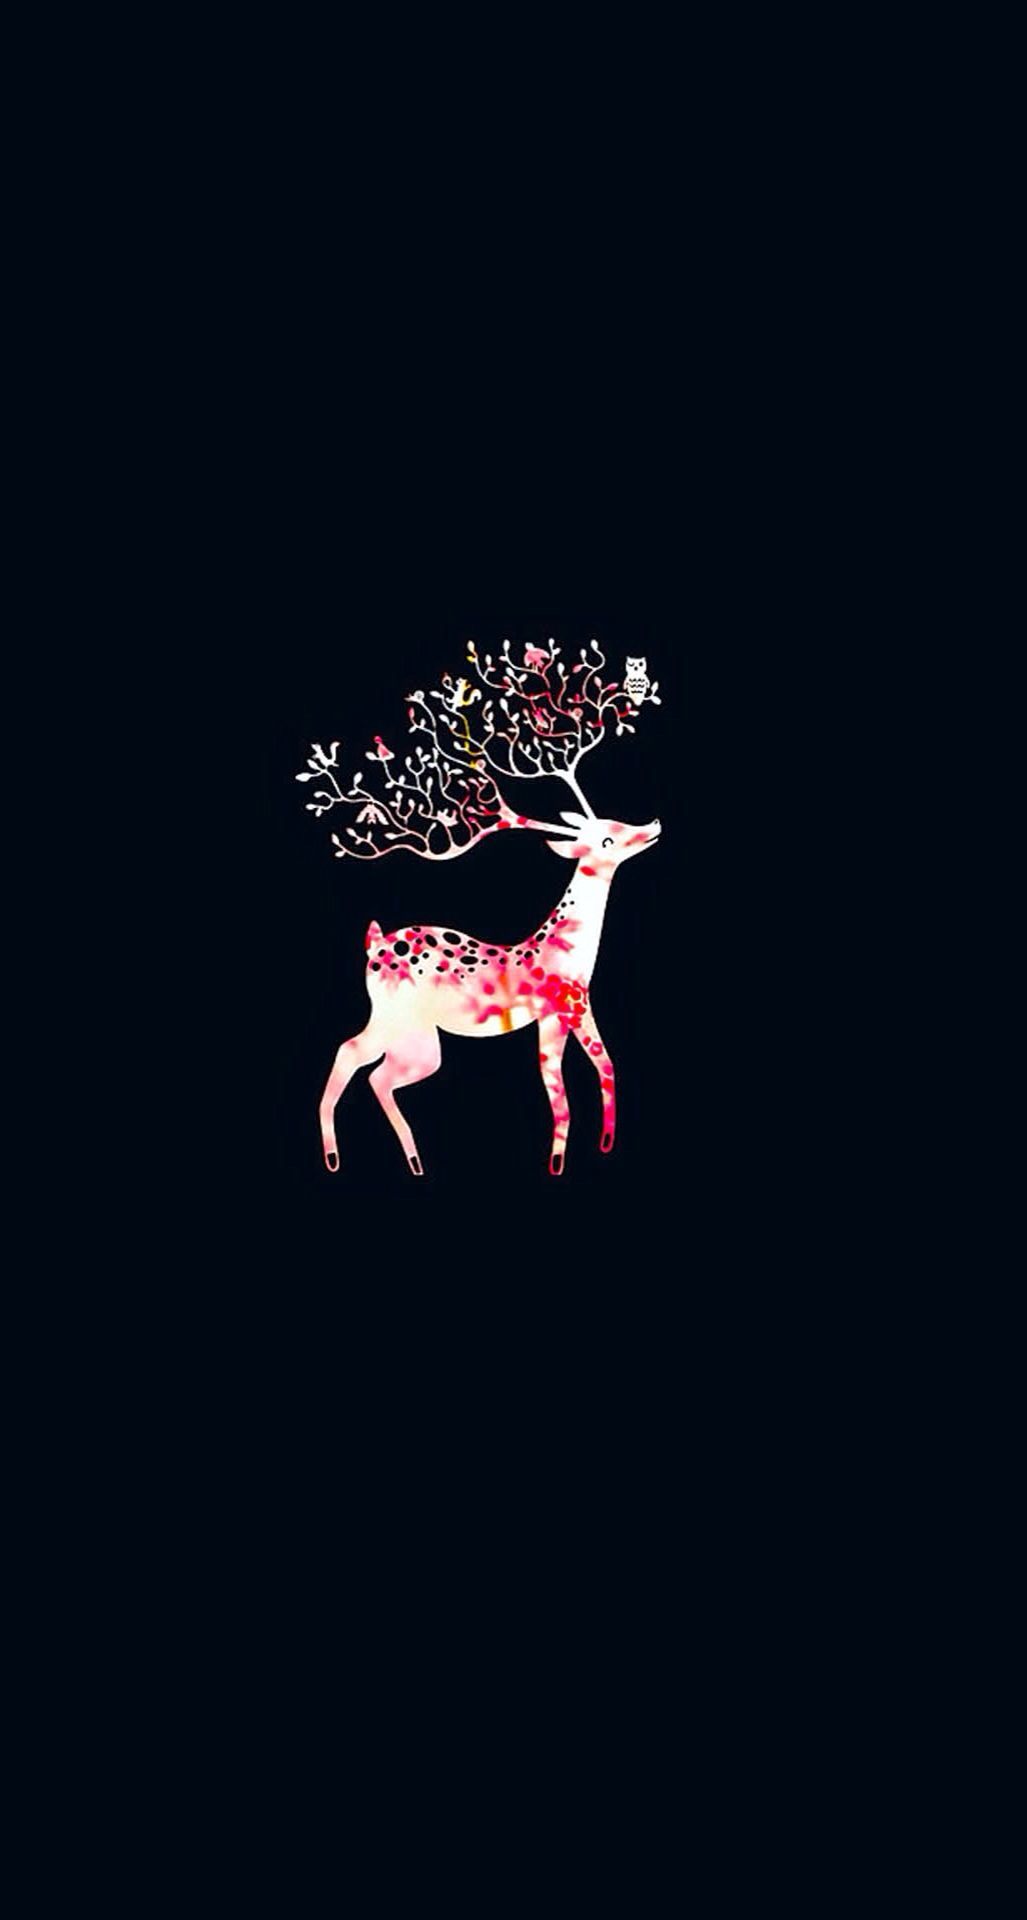 Deer art art watercolor wallpaper deer wallpaper - Browning deer cell phone wallpaper ...